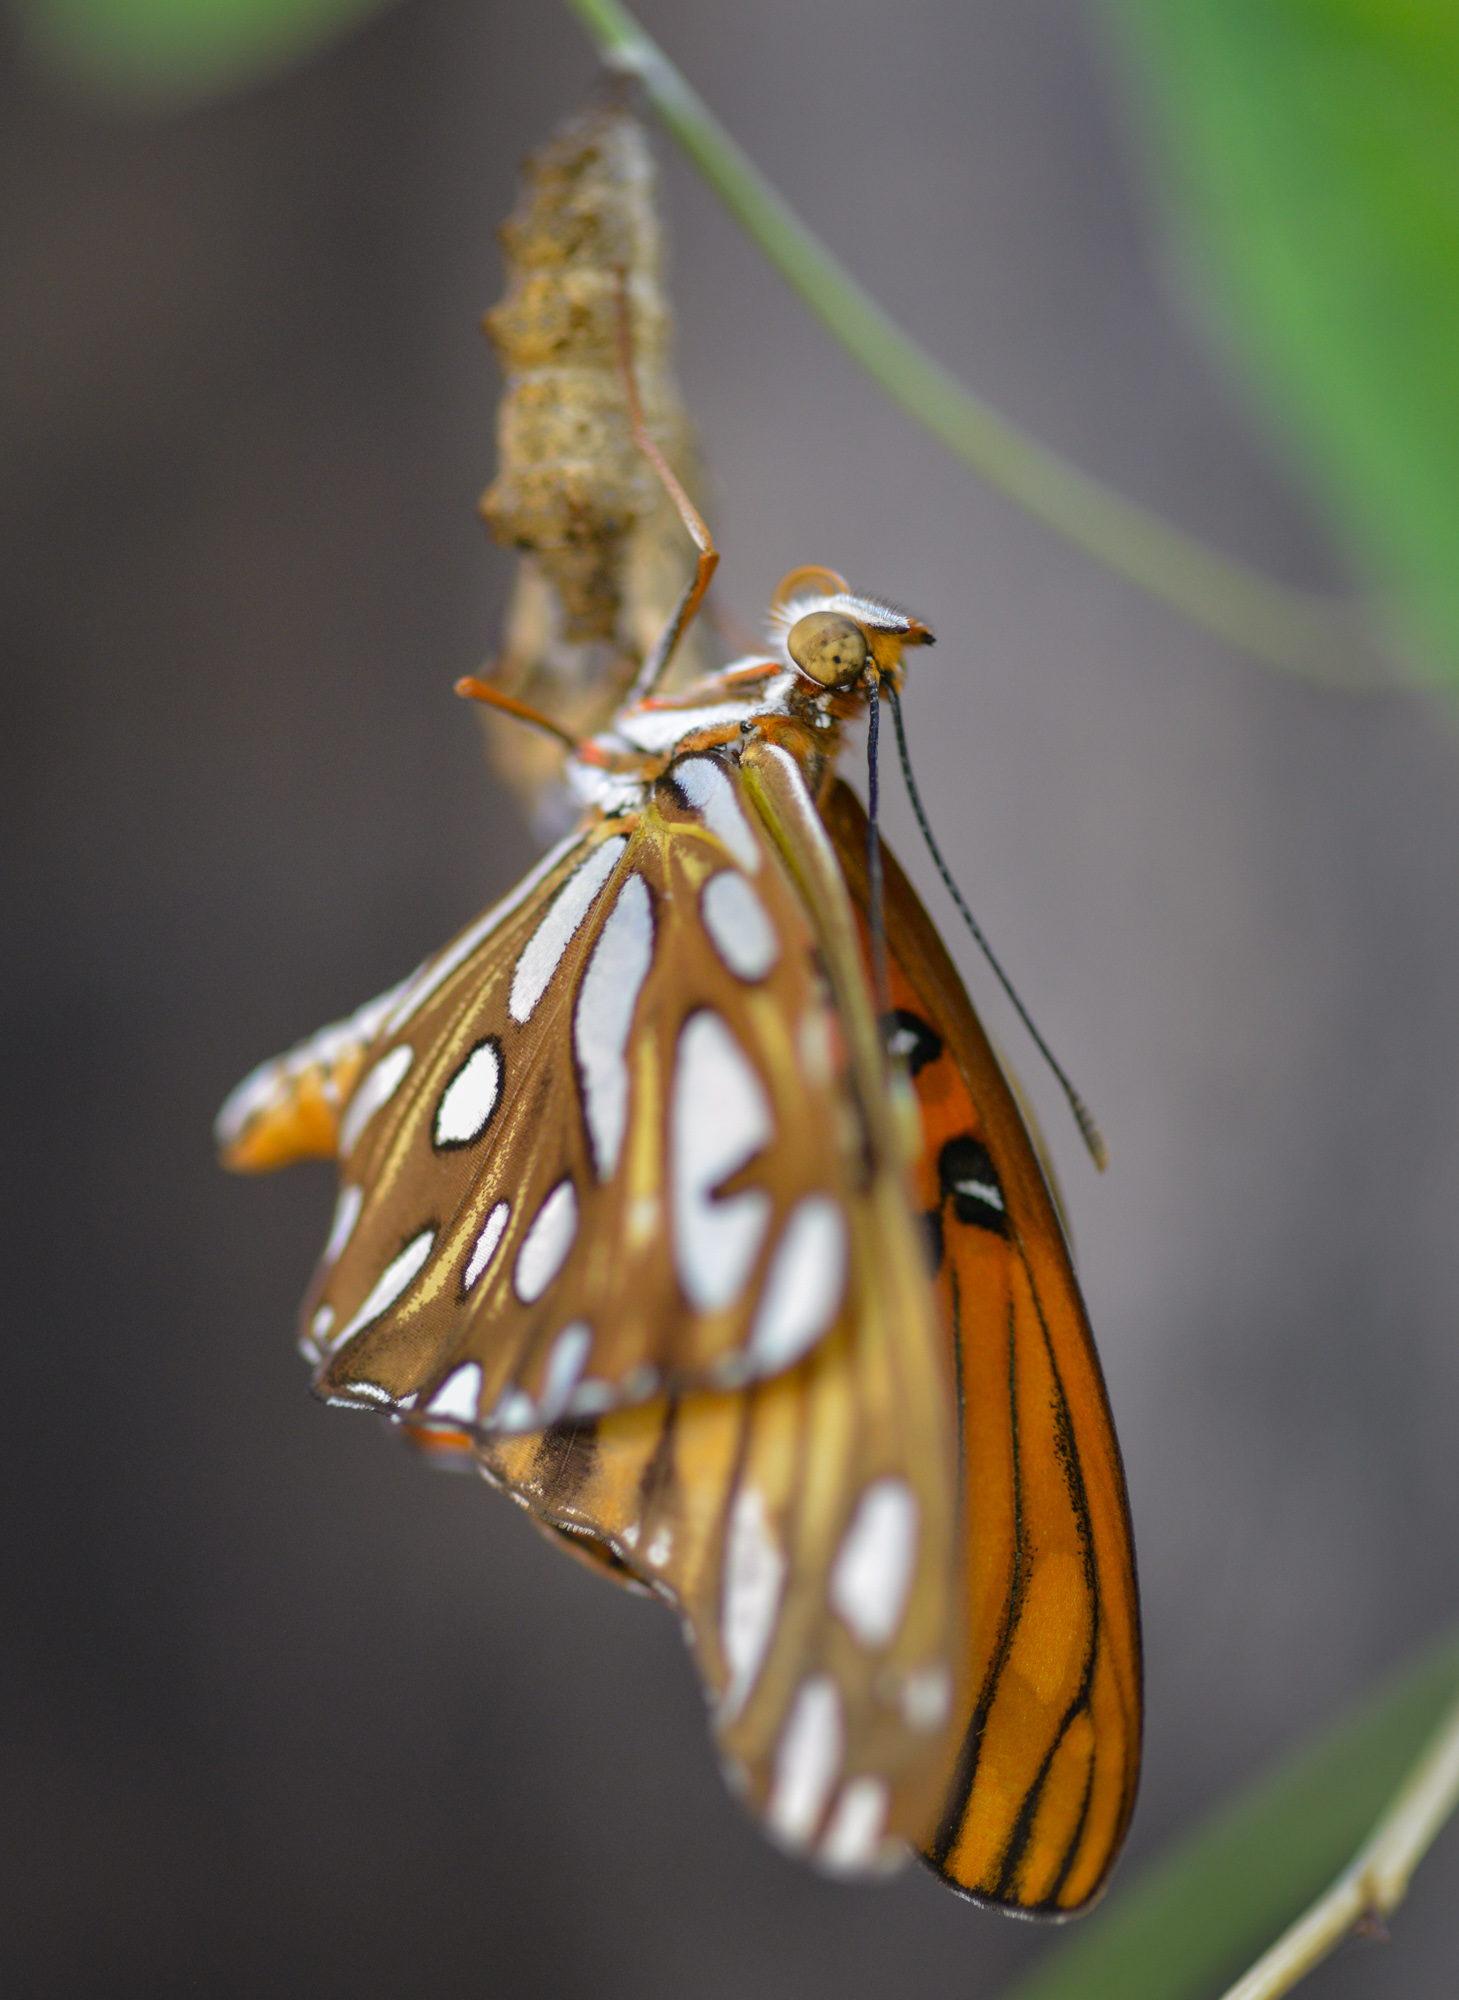 A Gulf Fritillary butterfly emerging from it's cocoon in Sacramento, California